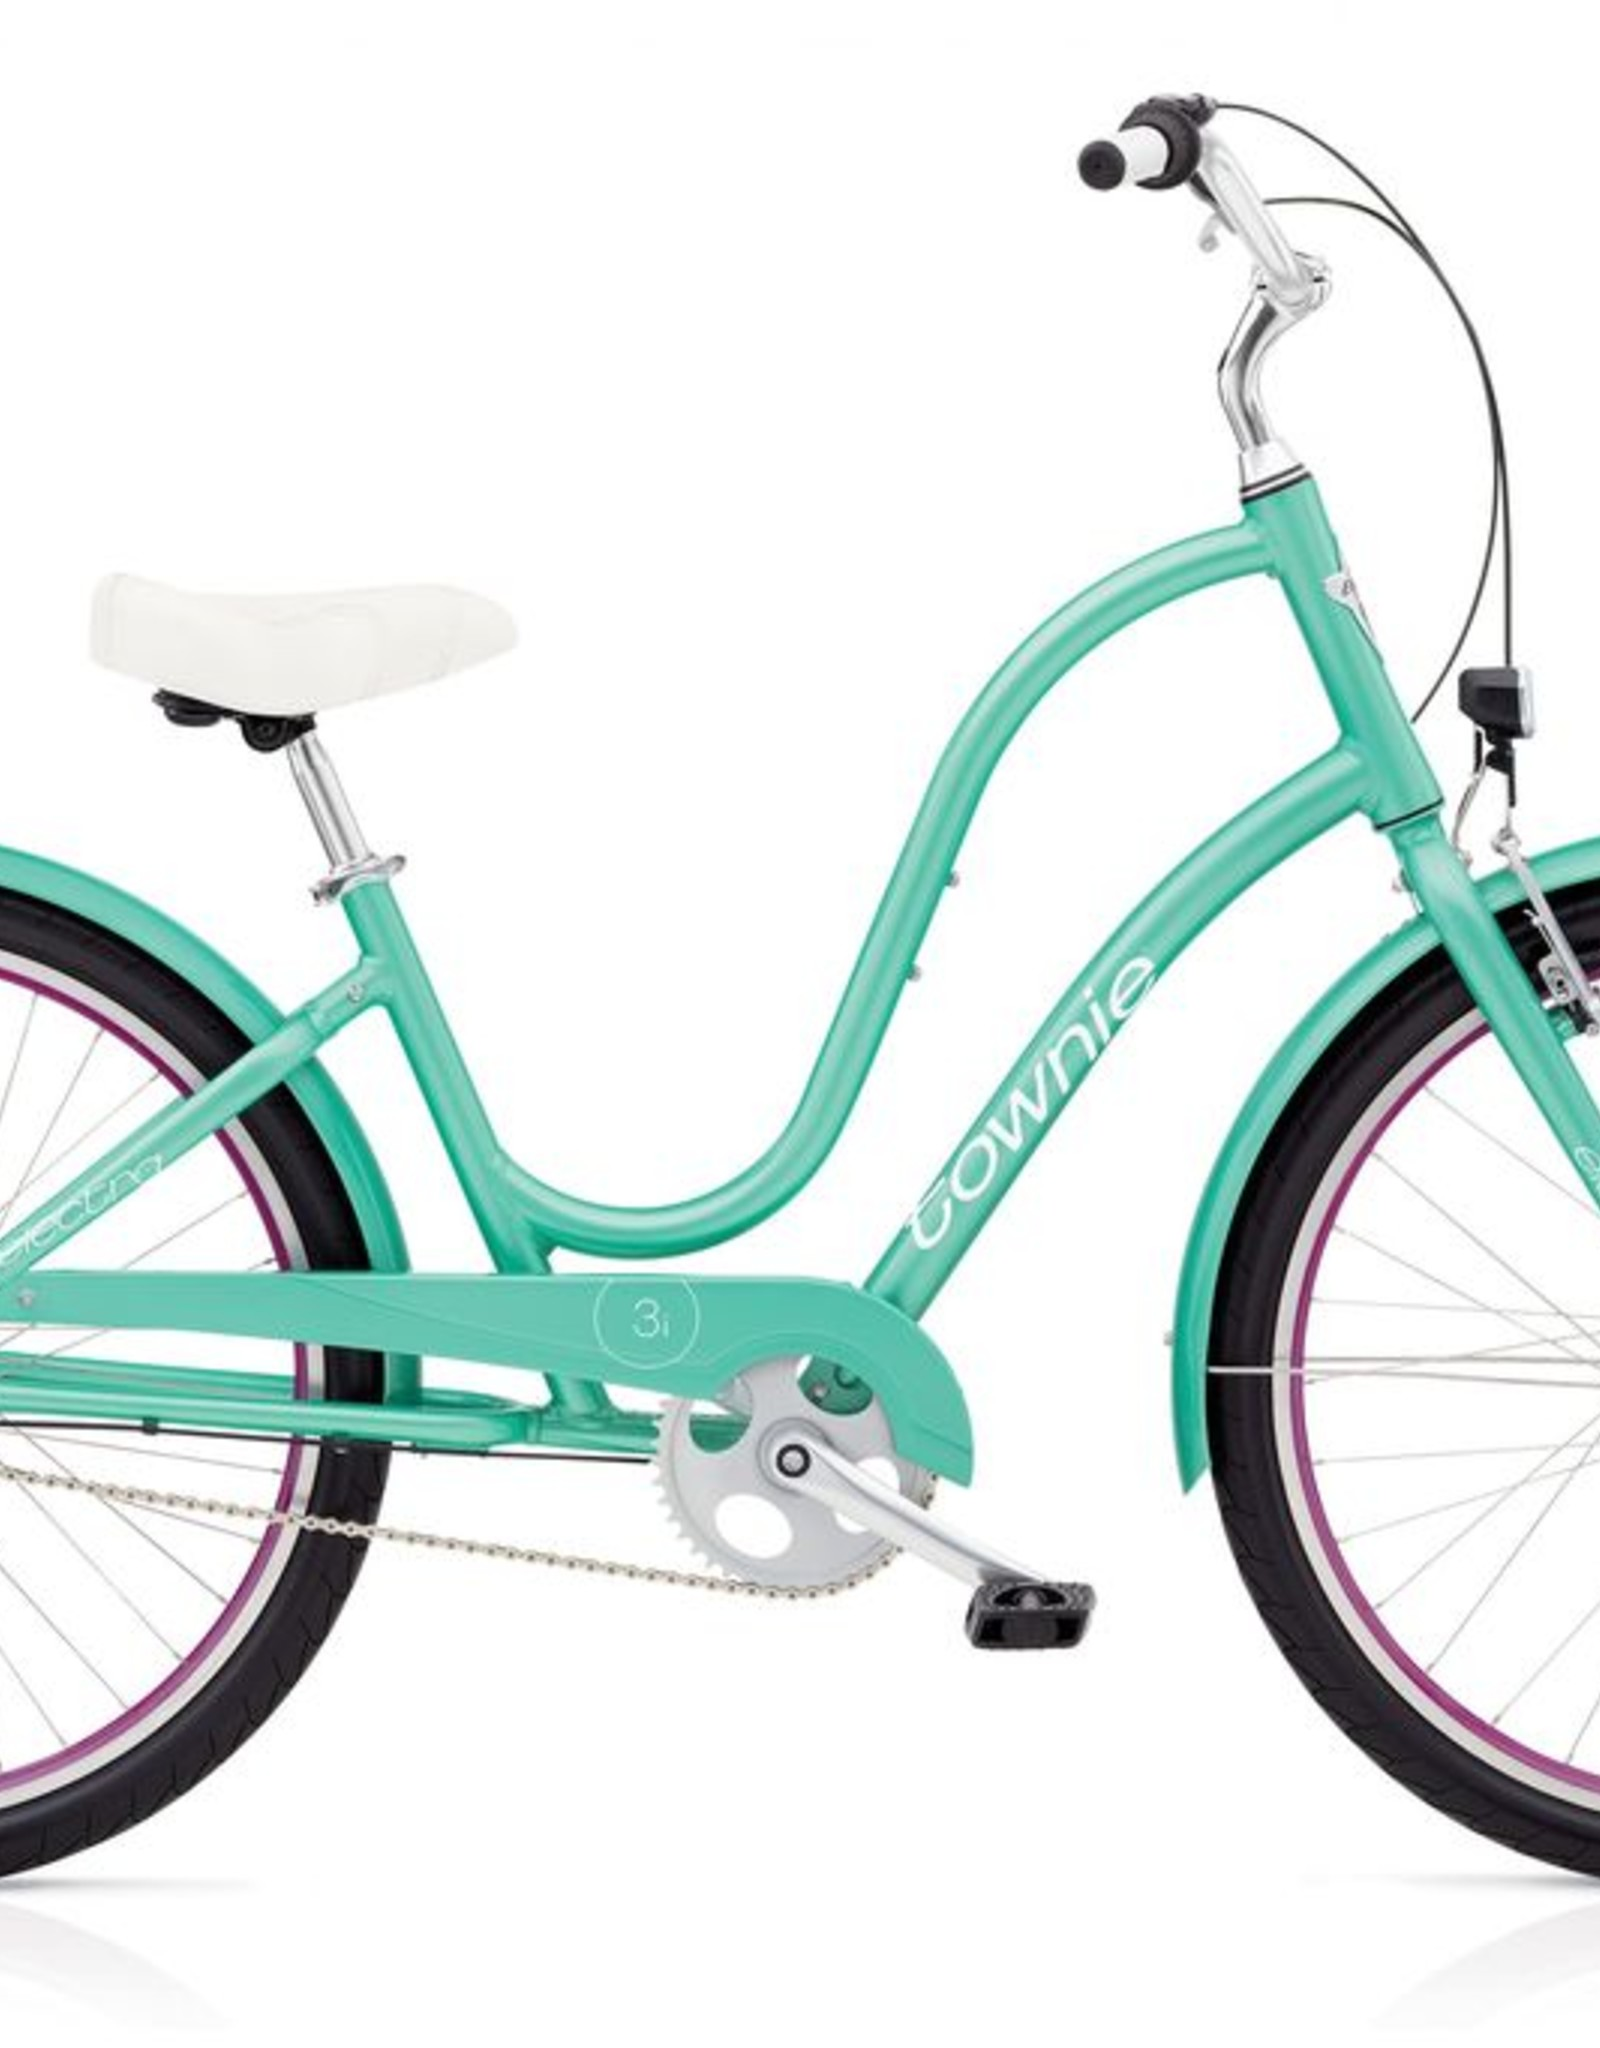 Townie Electra Townie Original 3i EQ, Ladies'